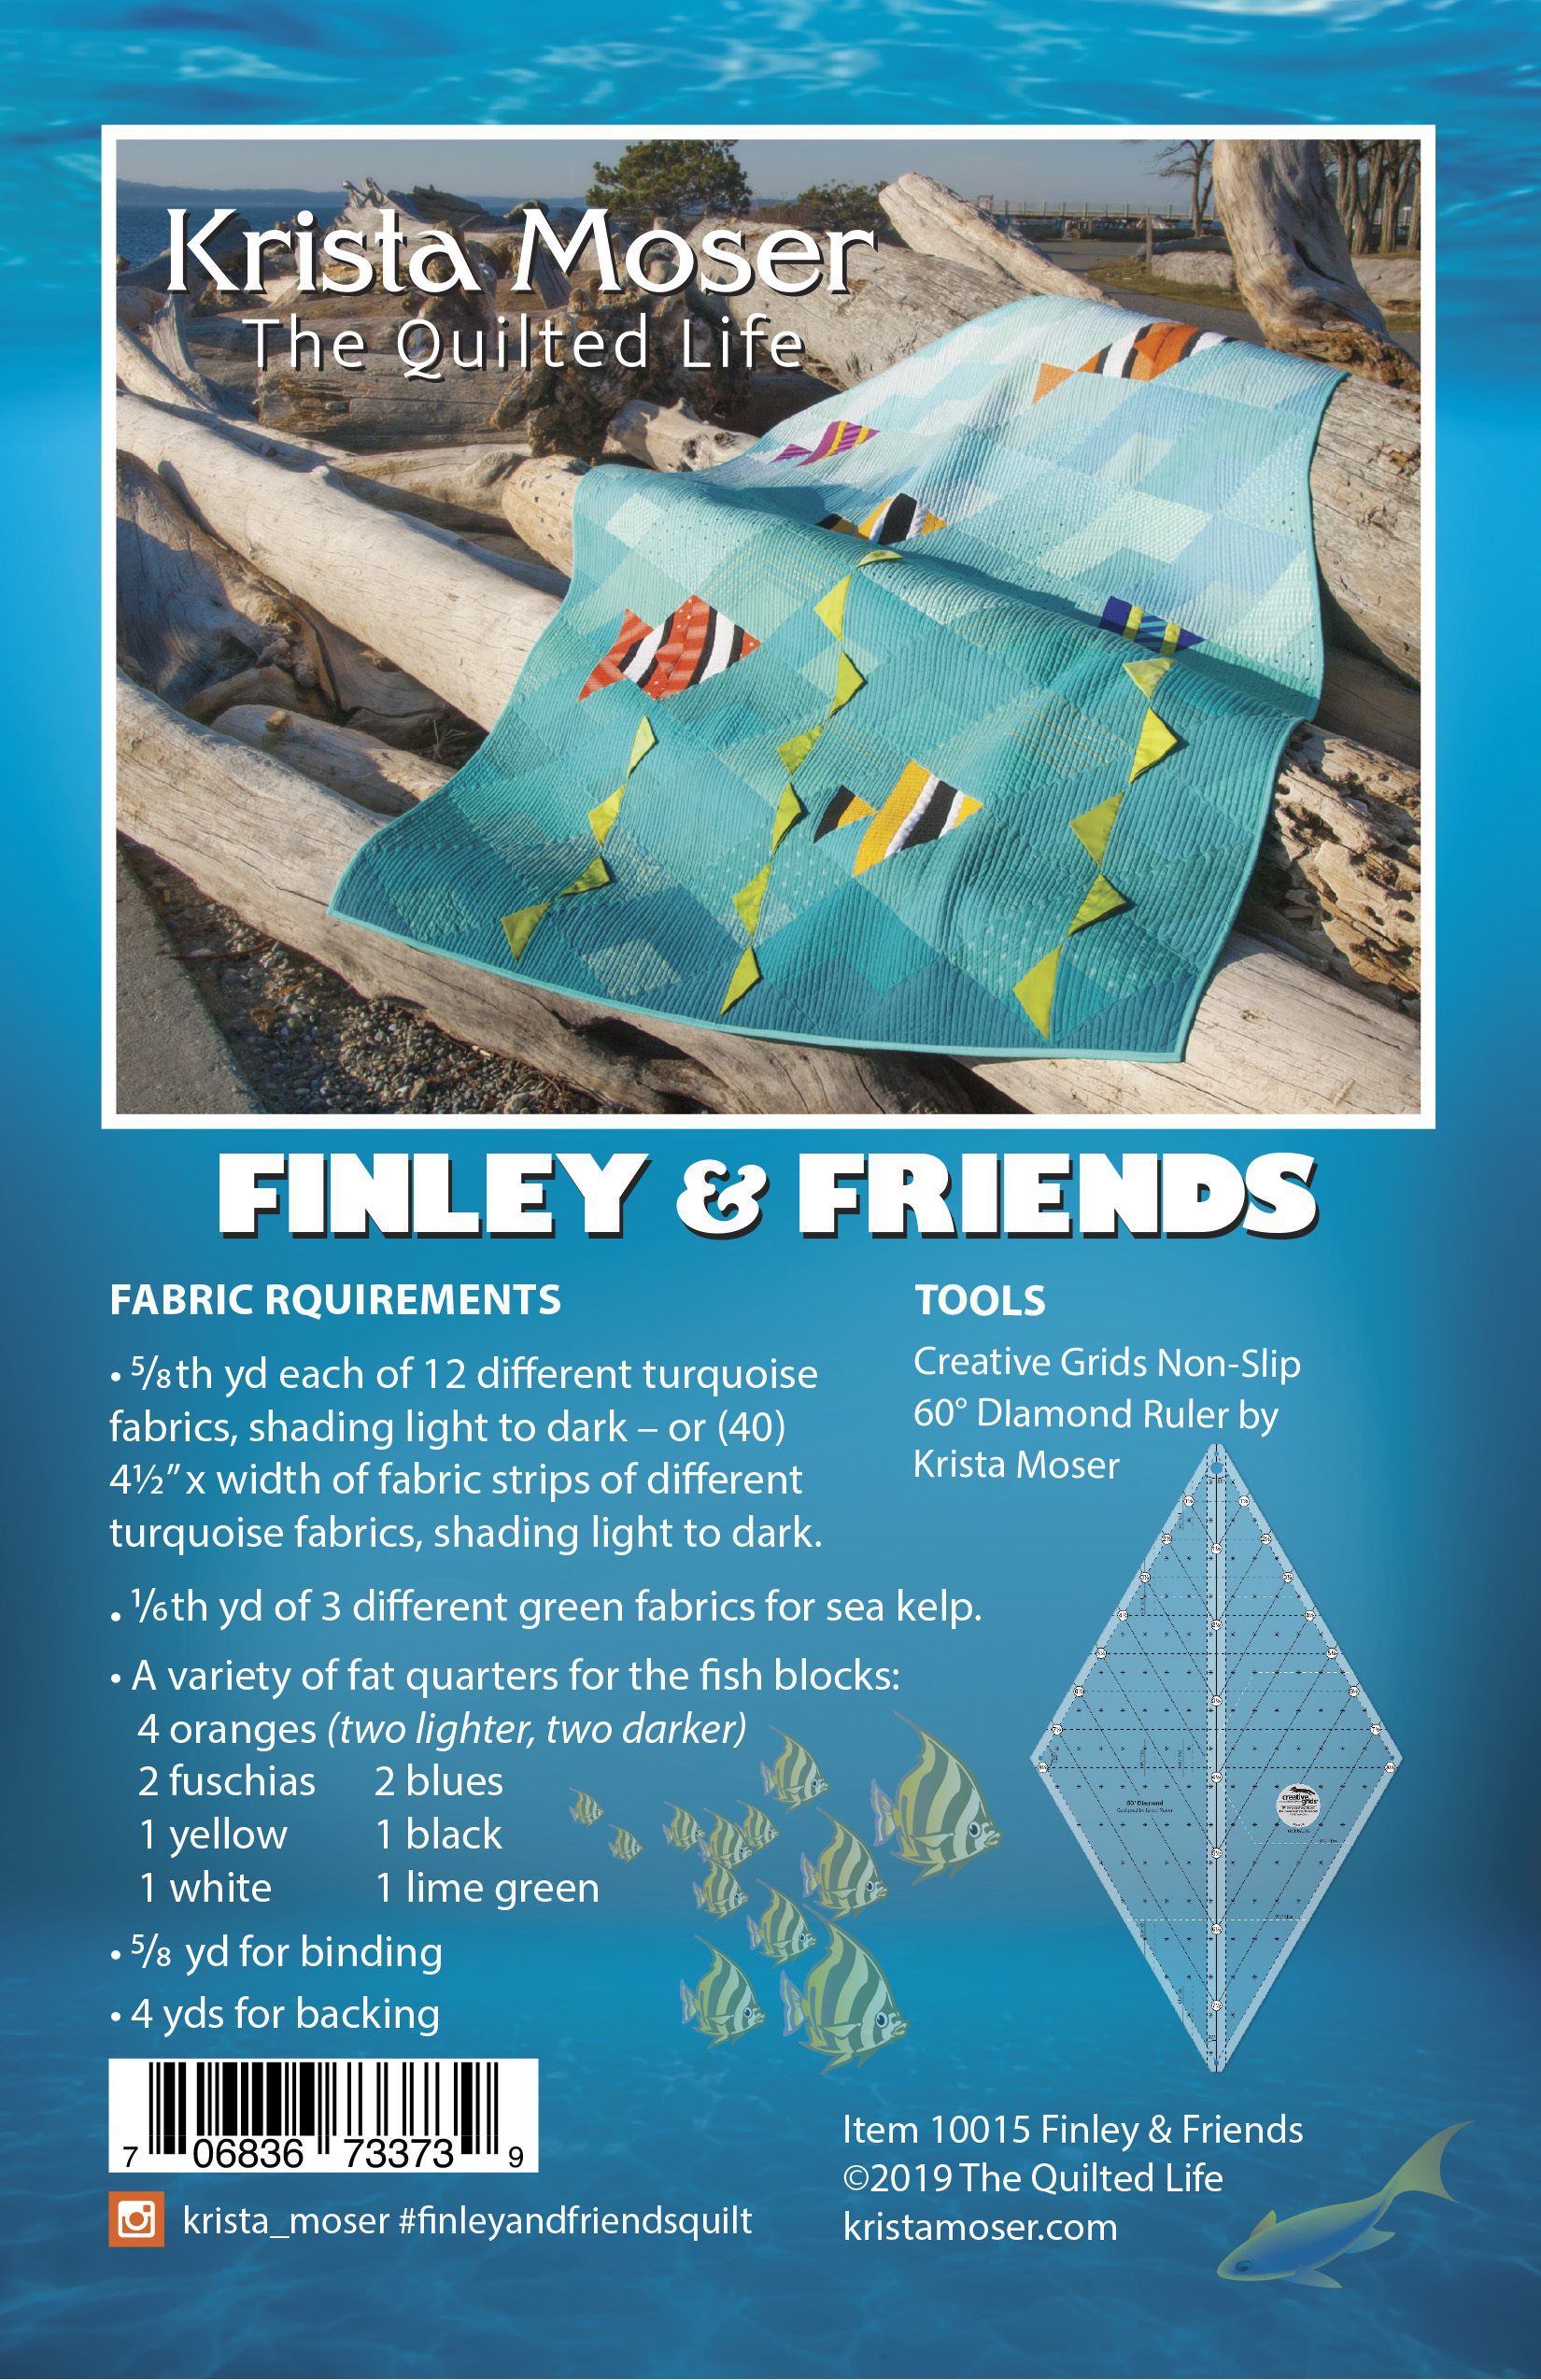 Finley & Friends